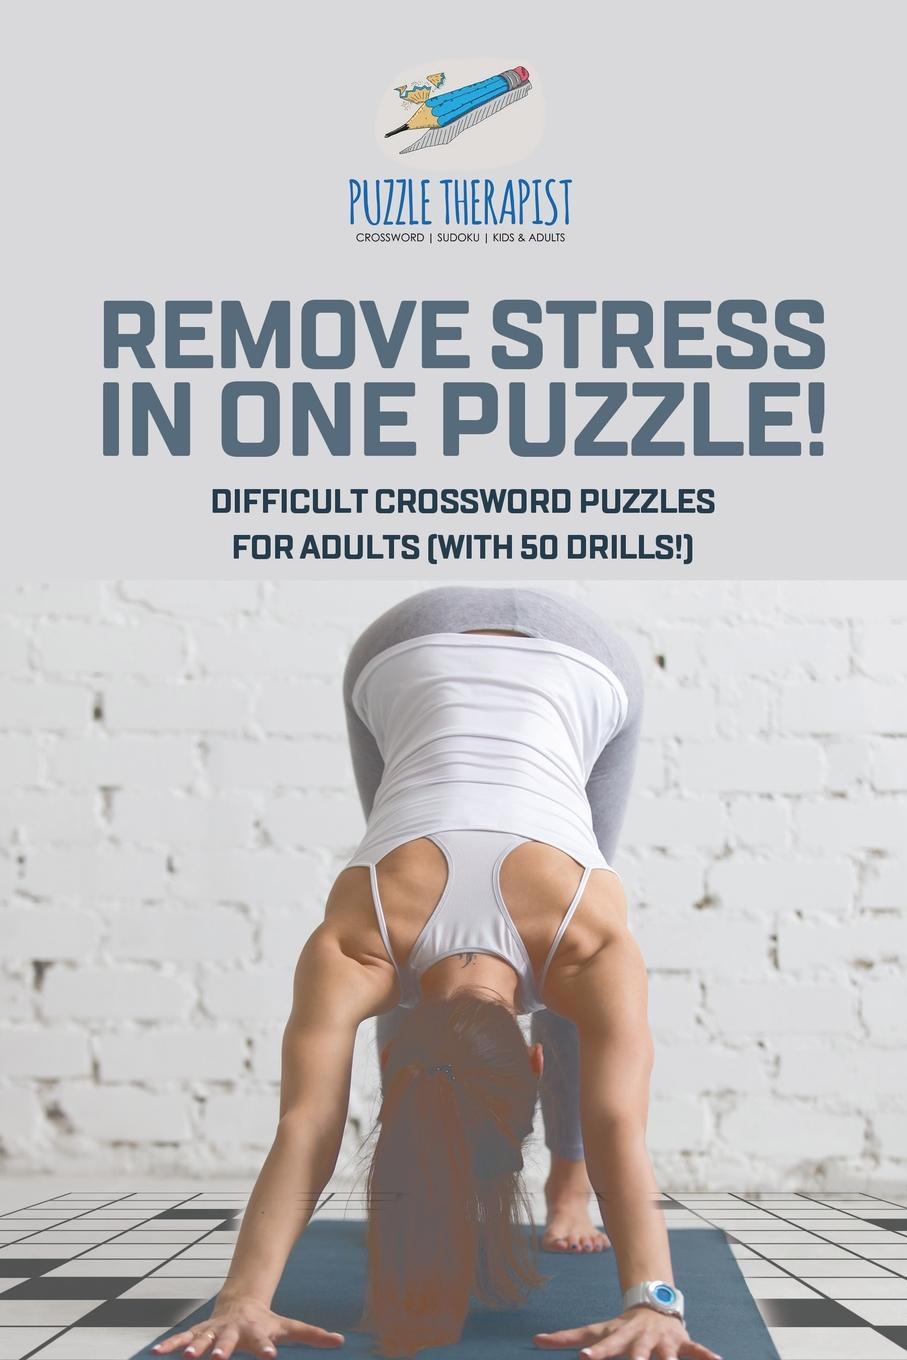 Puzzle Therapist Remove Stress in One Puzzle. Difficult Crossword Puzzles for Adults (with 50 drills.) sahoo bike bicycle helmet buy one get two free with a pair of gloves